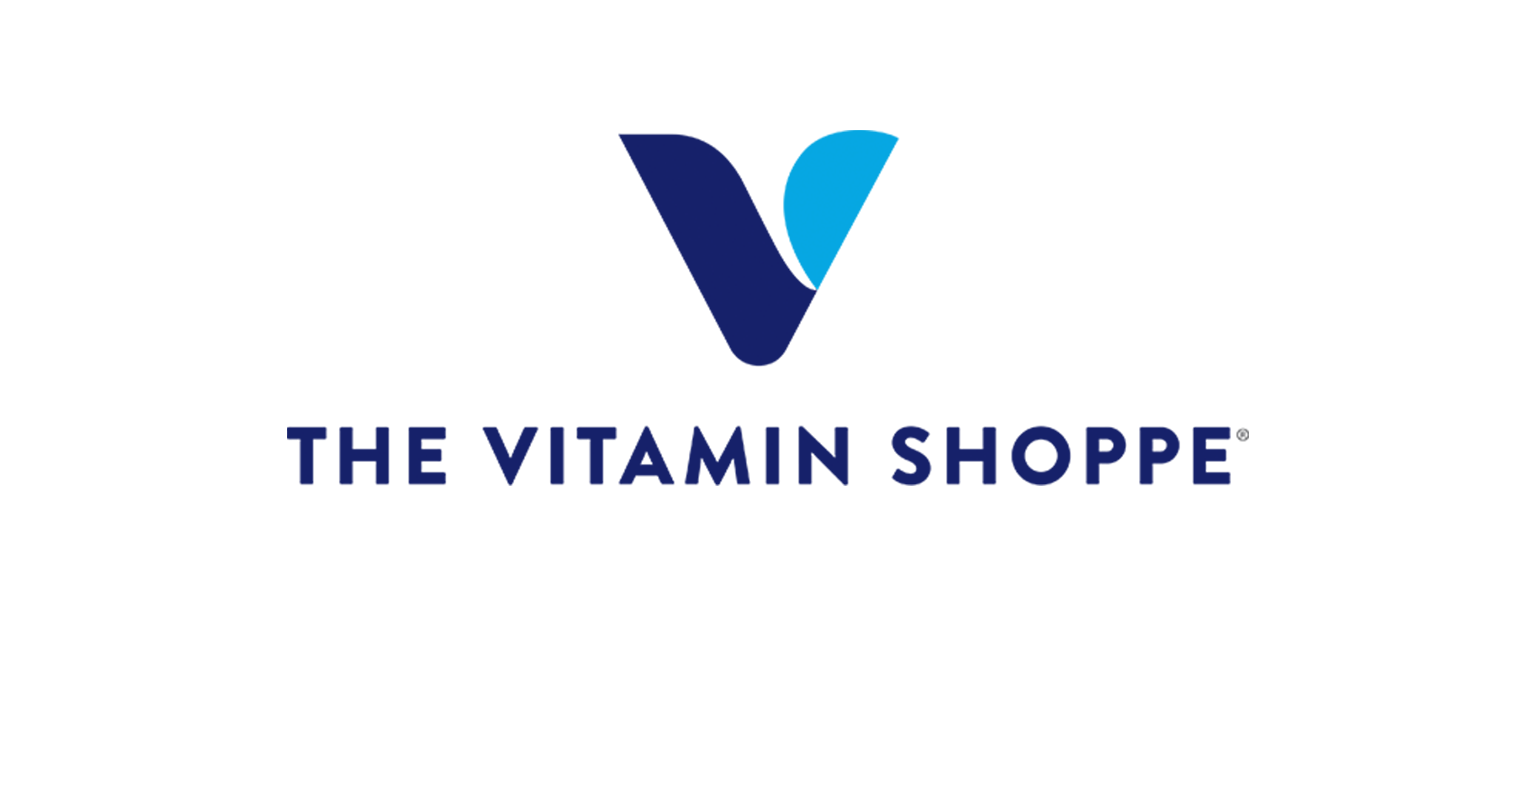 The Vitamin Shoppe sales and income fall slightly.